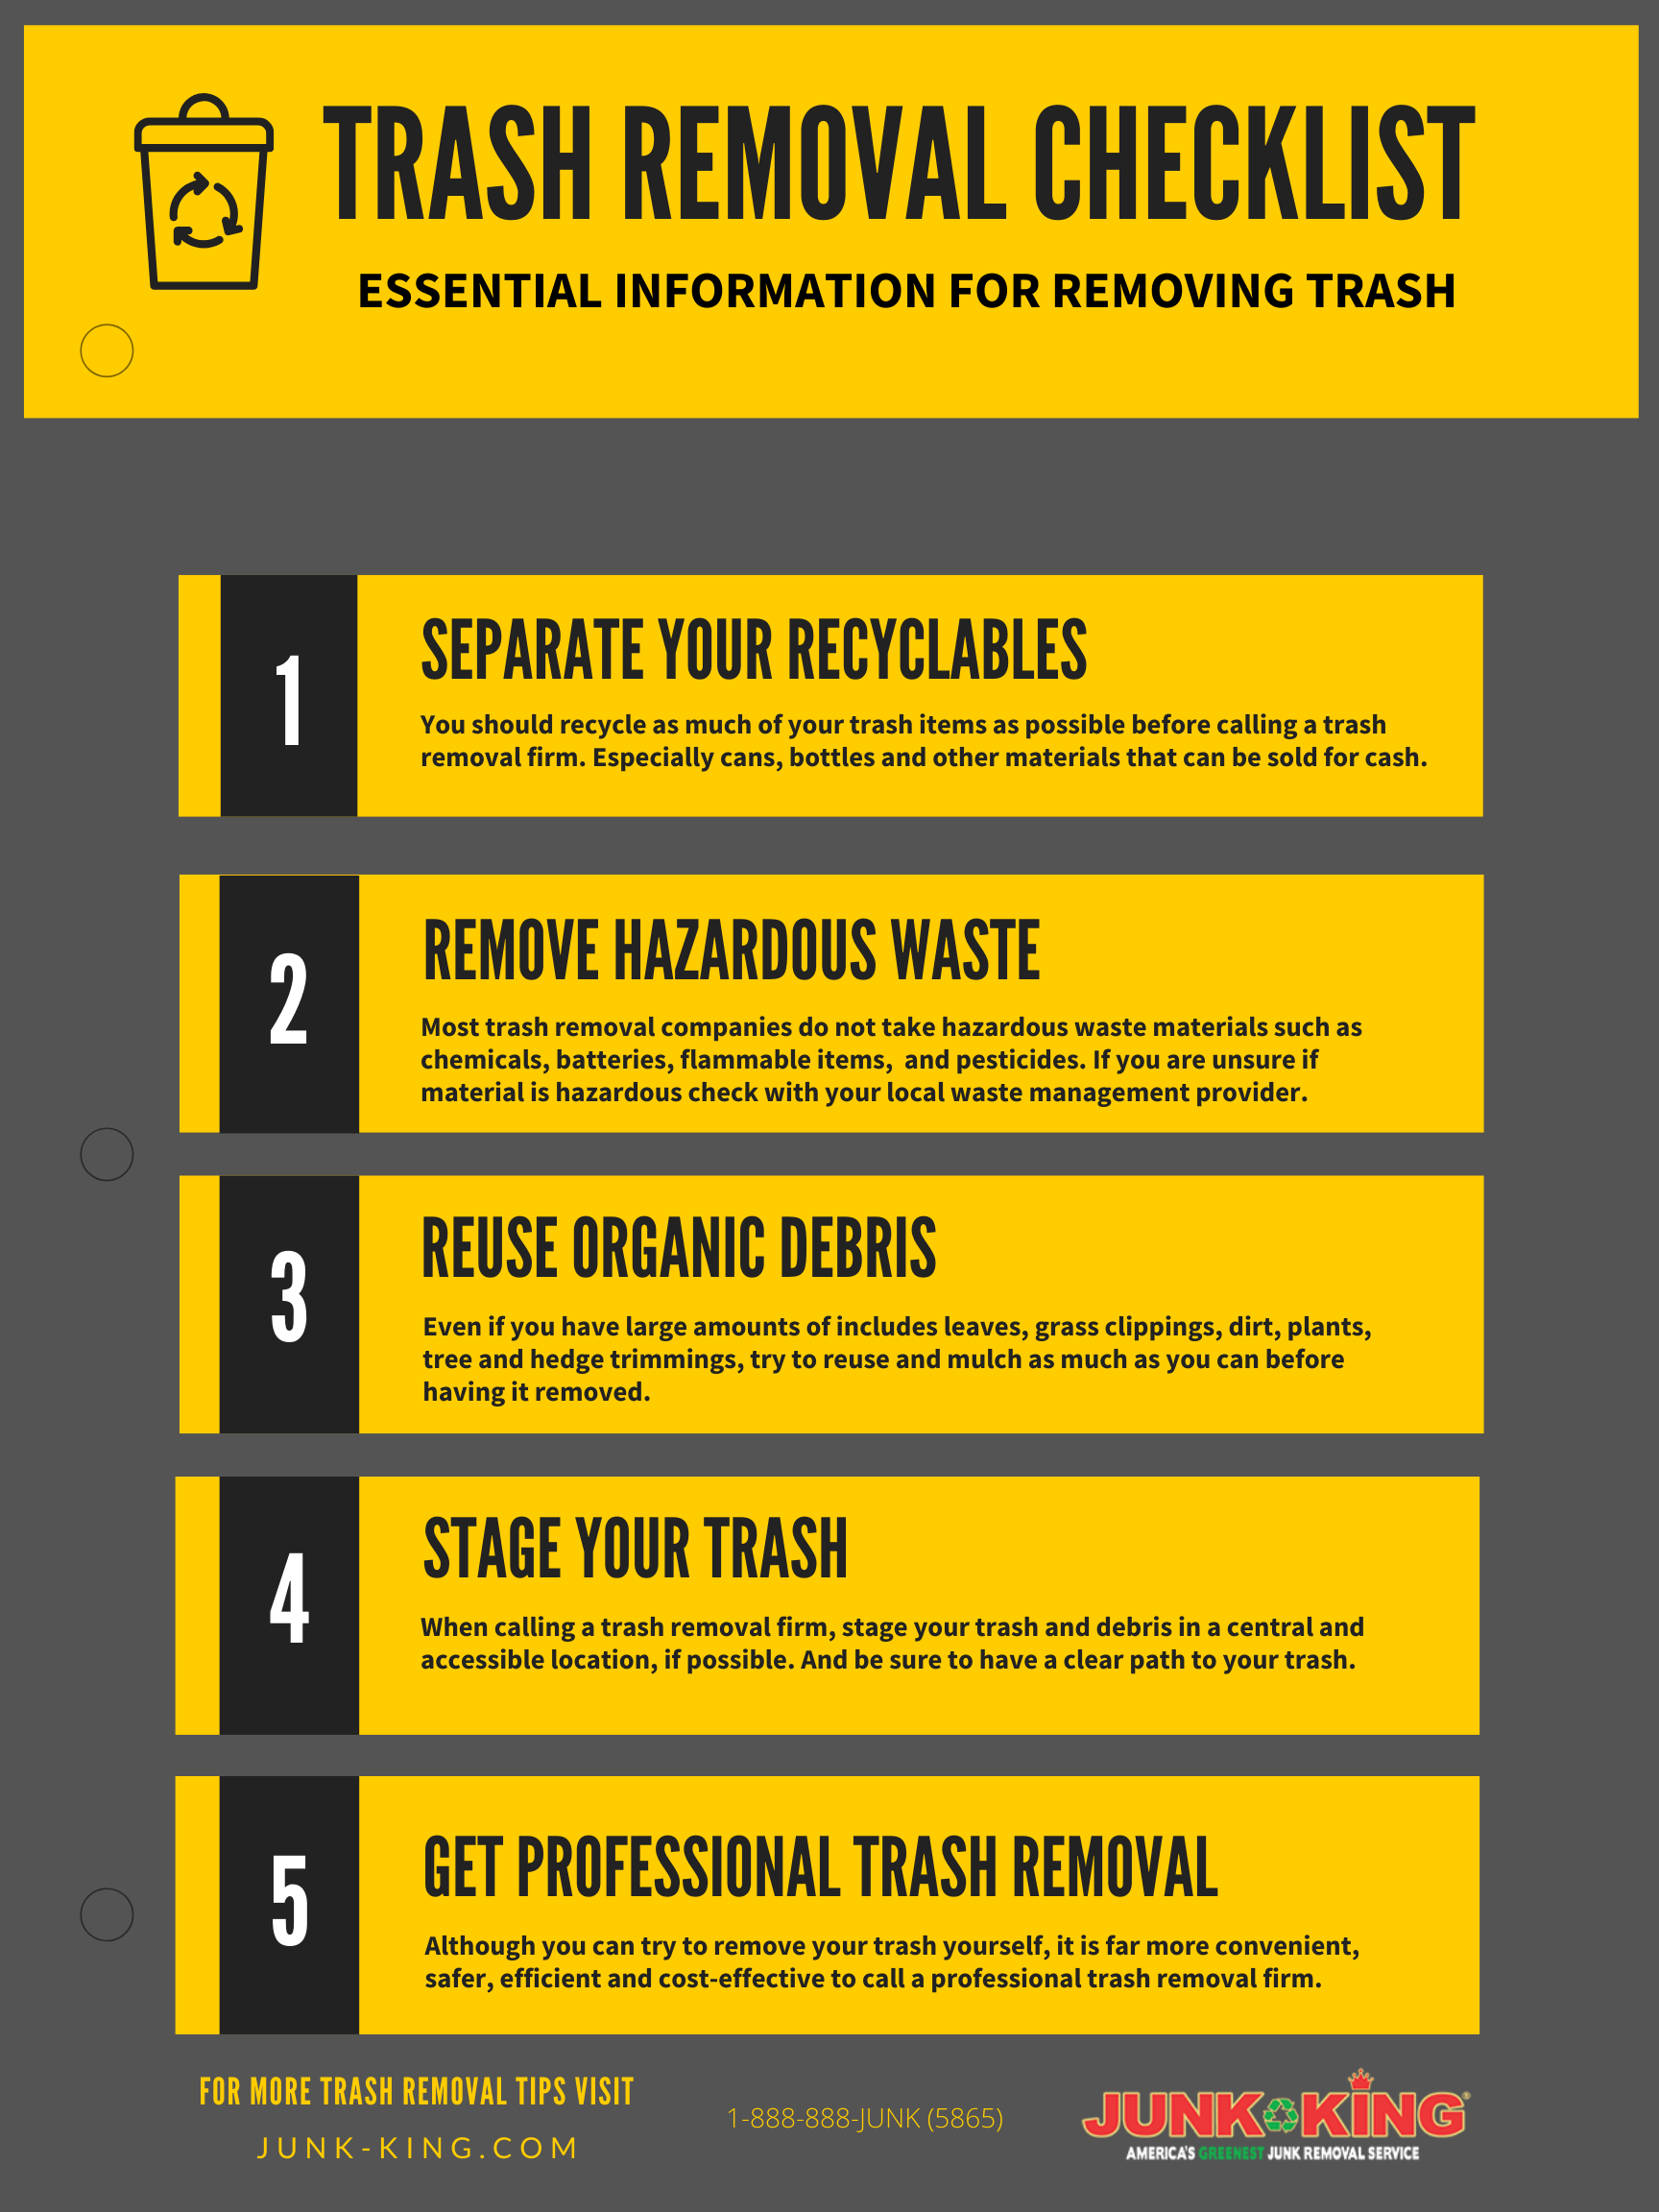 Trash Removal Checklist